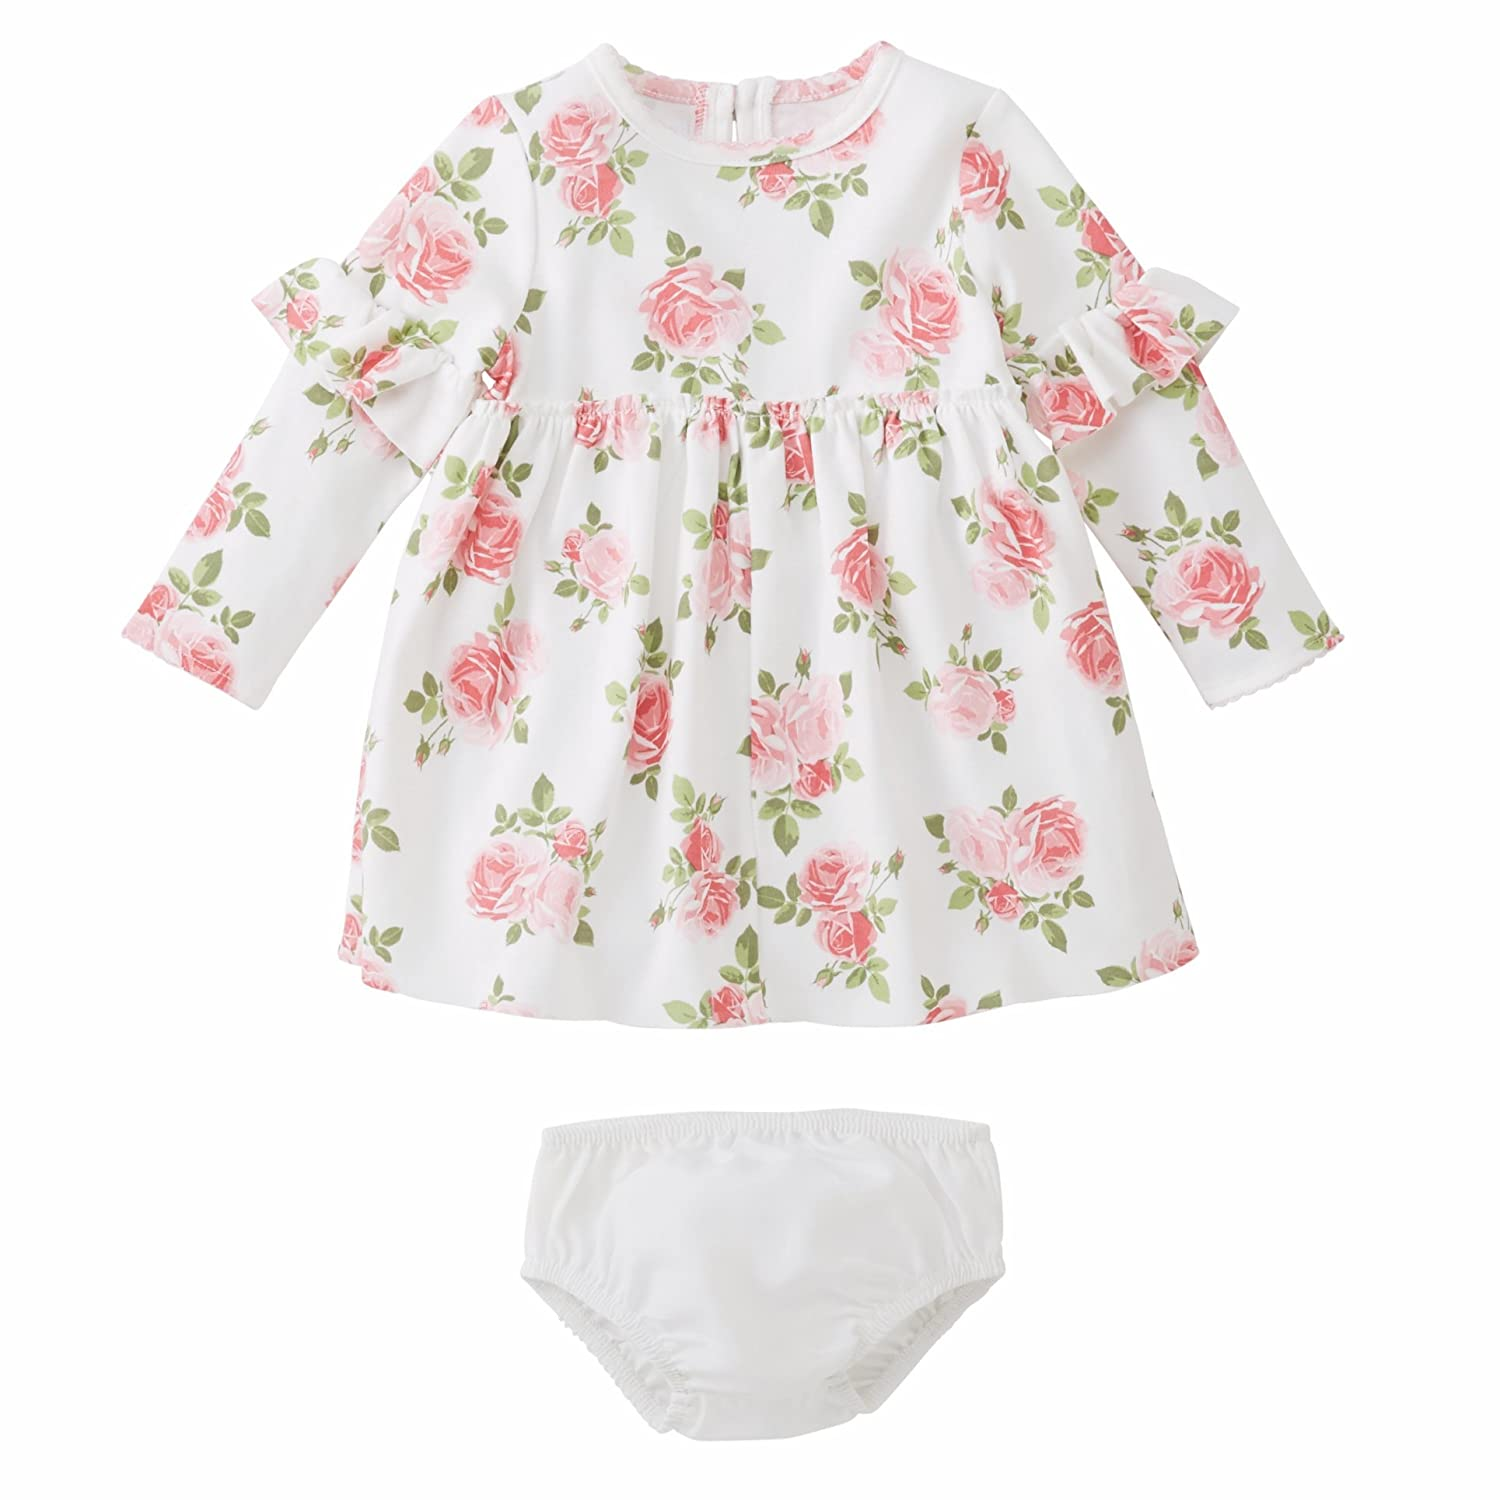 Mud Pie Baby Girl Floral Dress with Bloomer Children Apparel